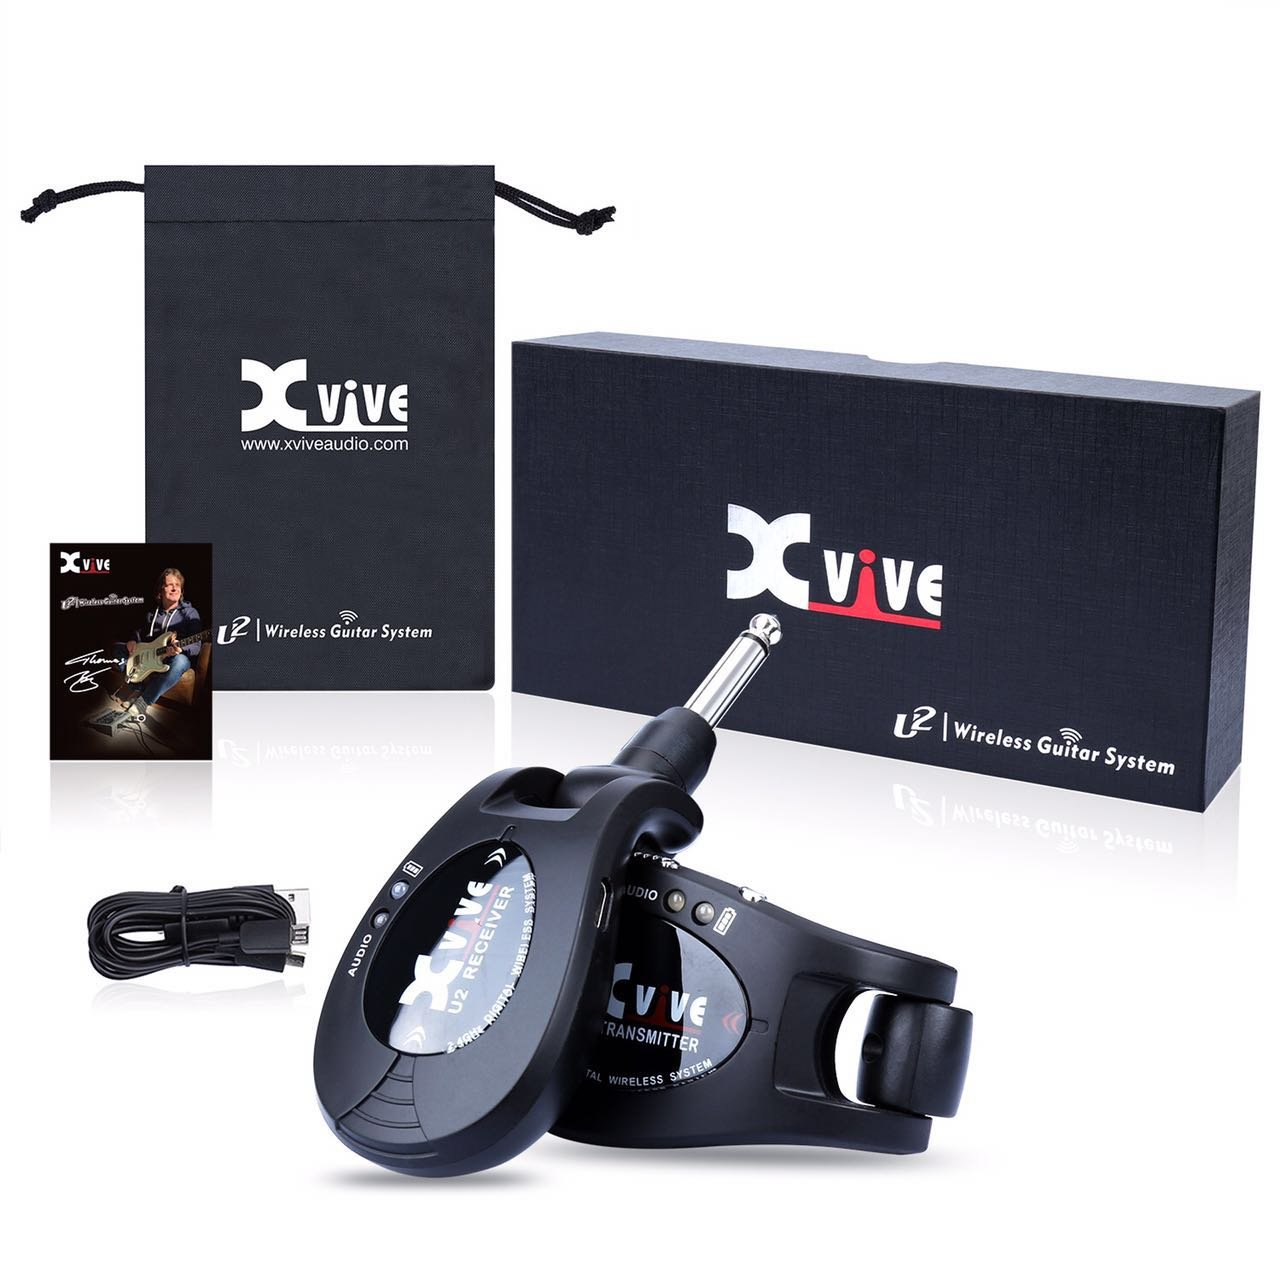 Xvive U2 rechargeable 2.4GHZ Wireless Guitar System - Digital Guitar Transmitter Receiver (Black)